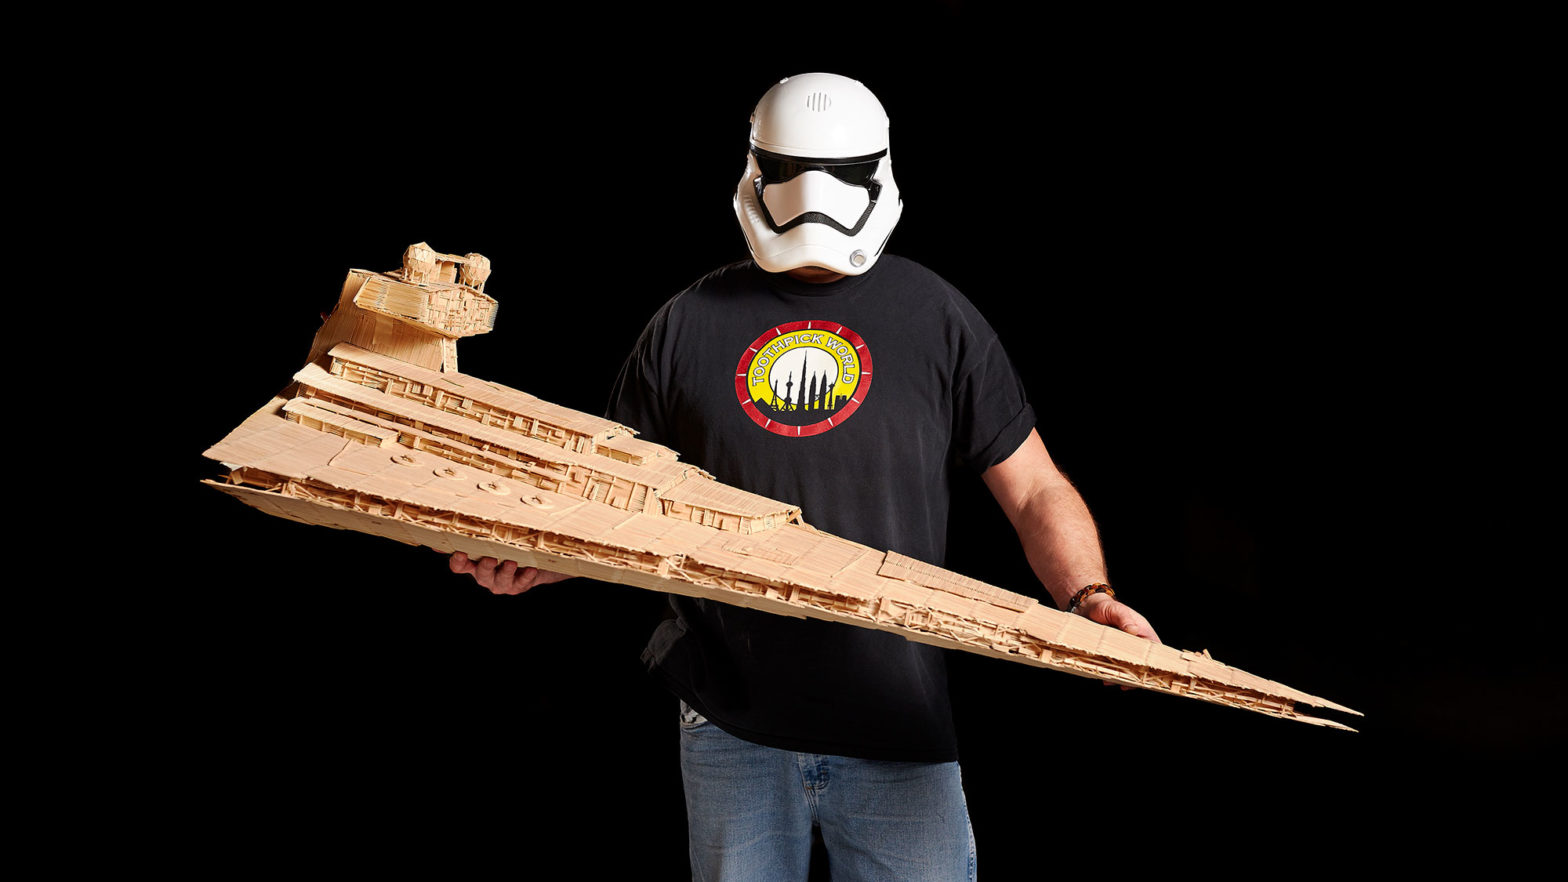 Largest Star Wars Toothpick Sculpture